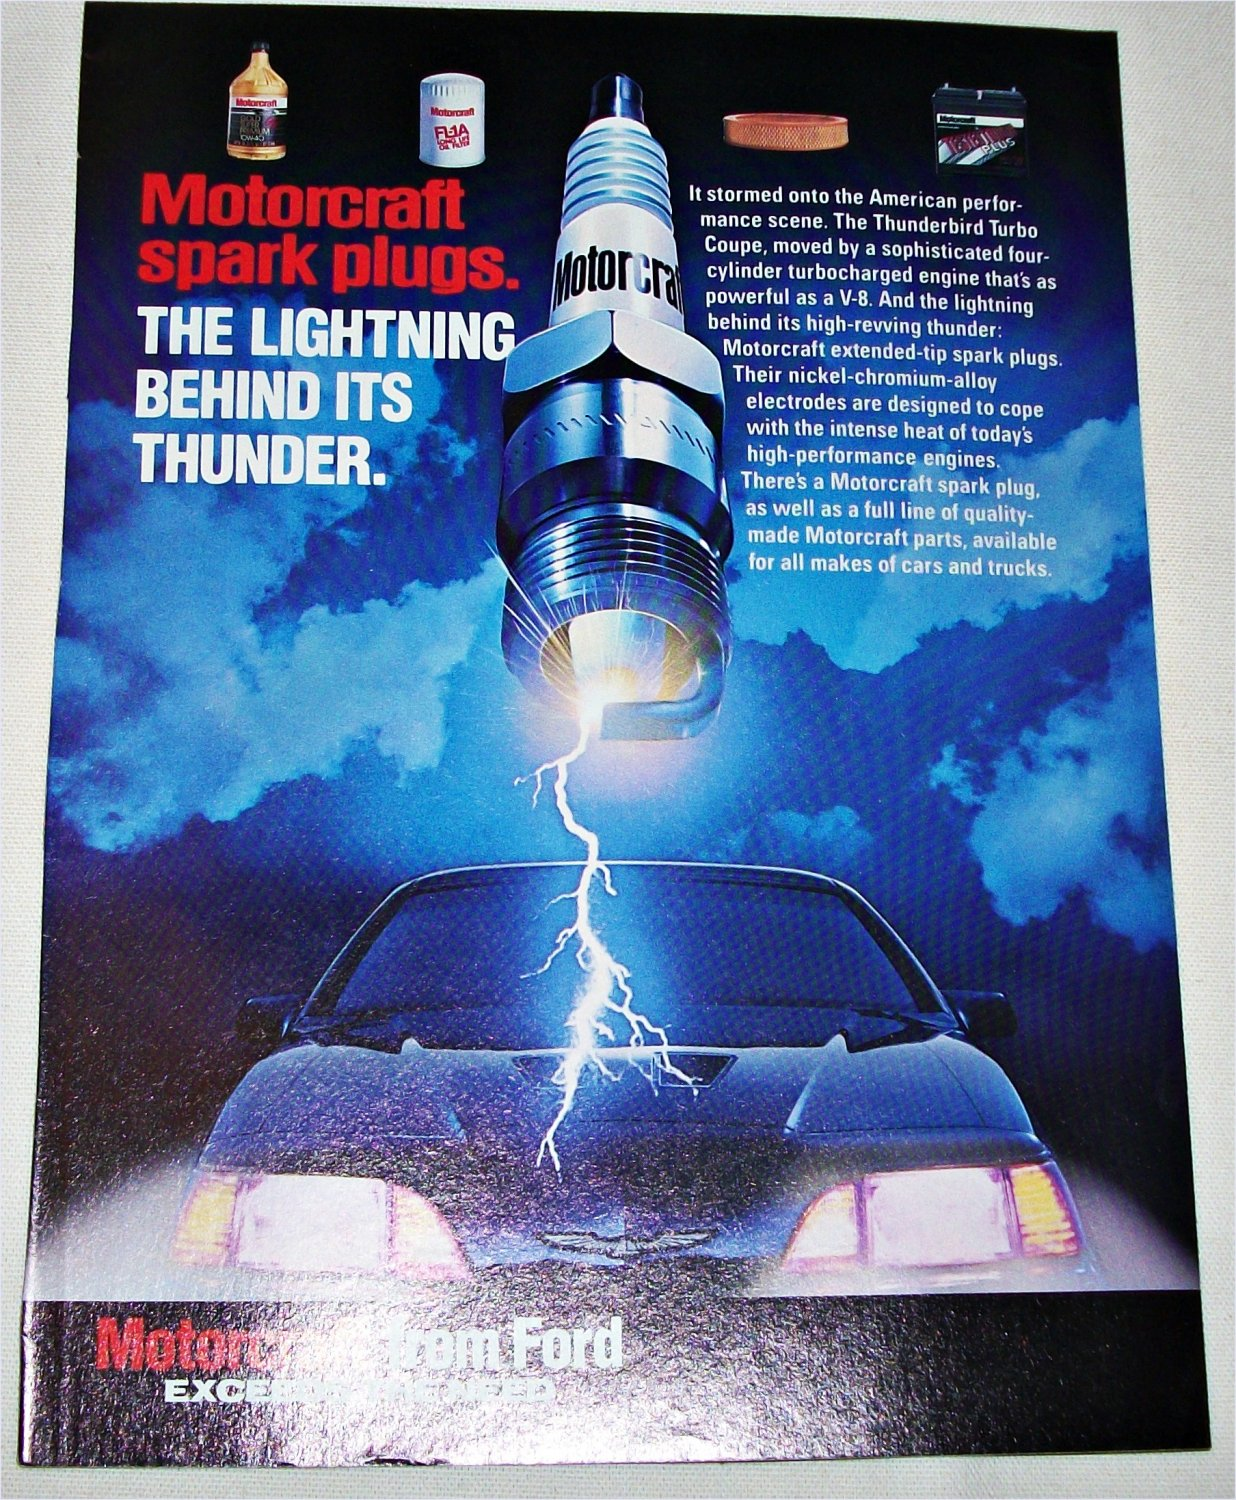 1987 Motorcraft Spark Plugs ad